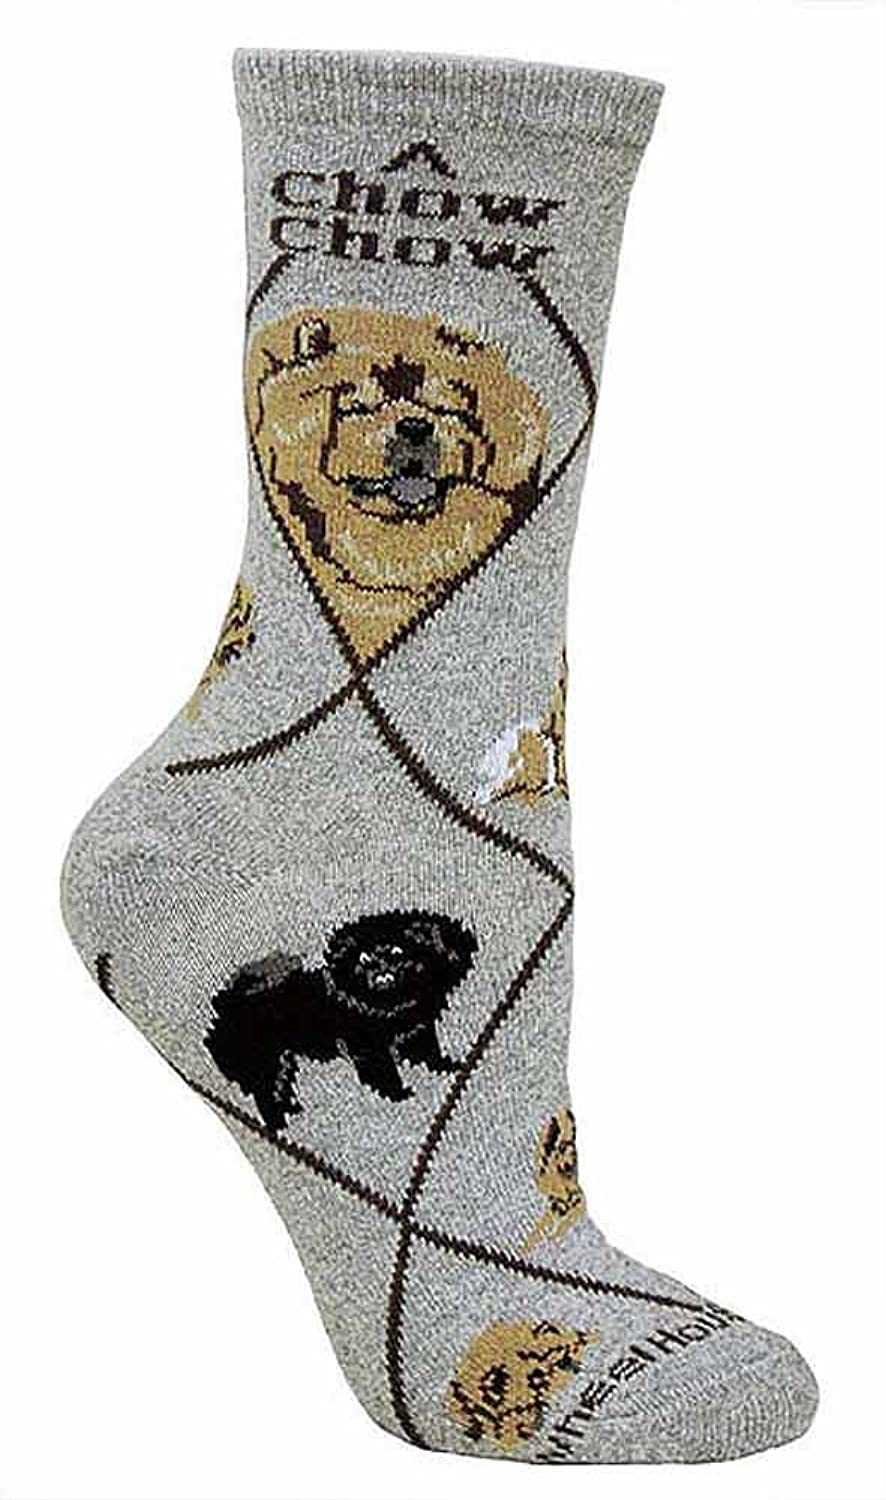 Hot Chow Animal Socks On Gray 9-11 for sale